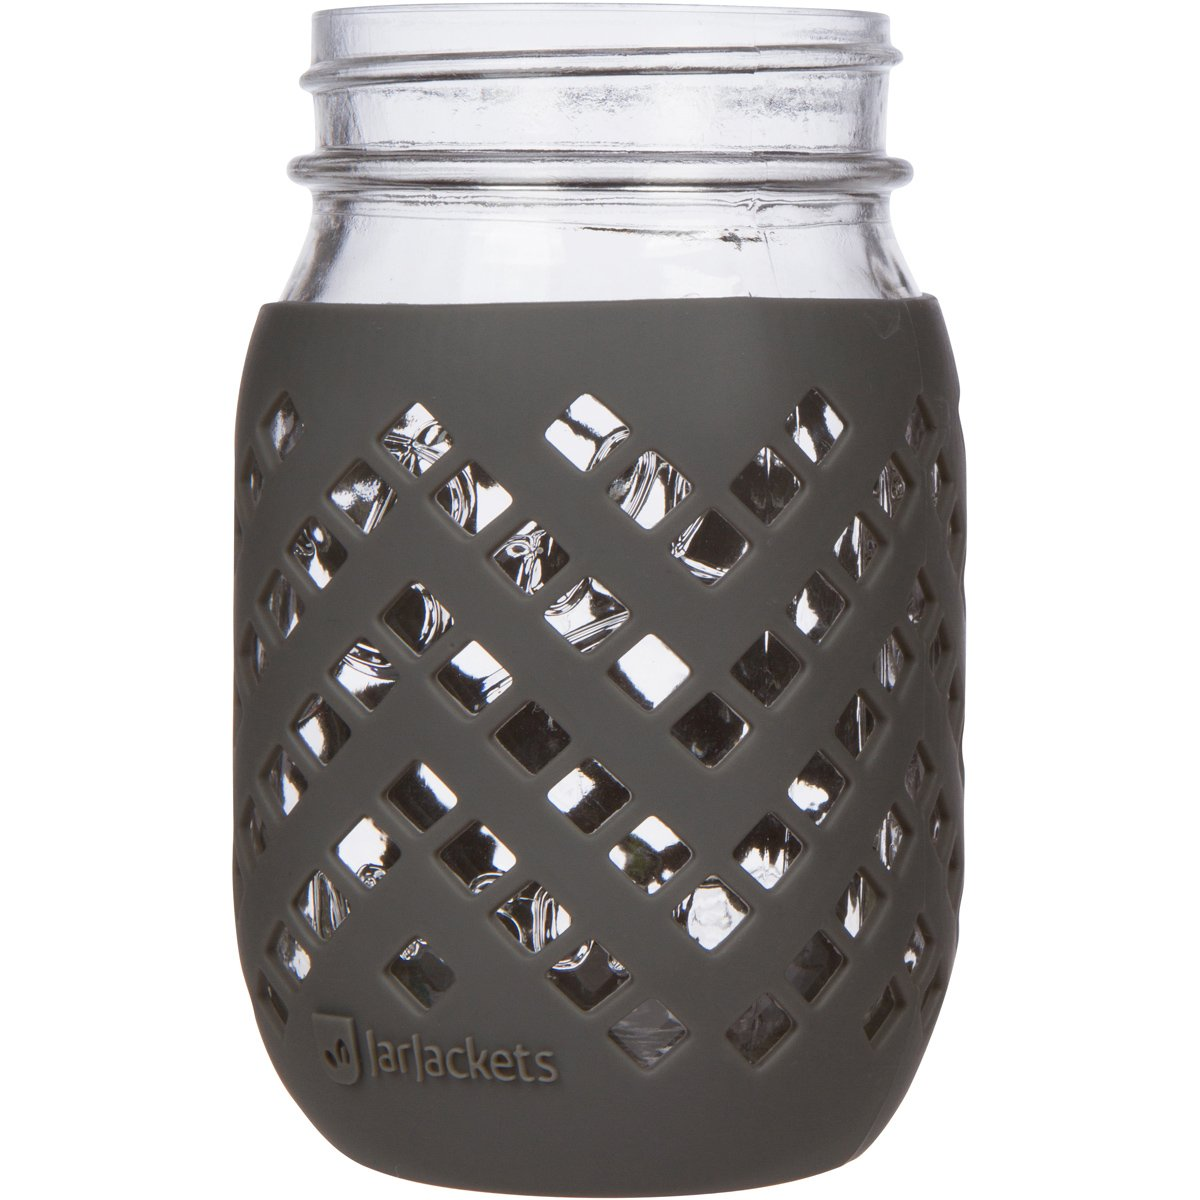 JarJackets Silicone Mason Jar Sleeve - Fits 16oz (1 Pint) Regular-Mouth Jars | Package of 1 (Midnight)